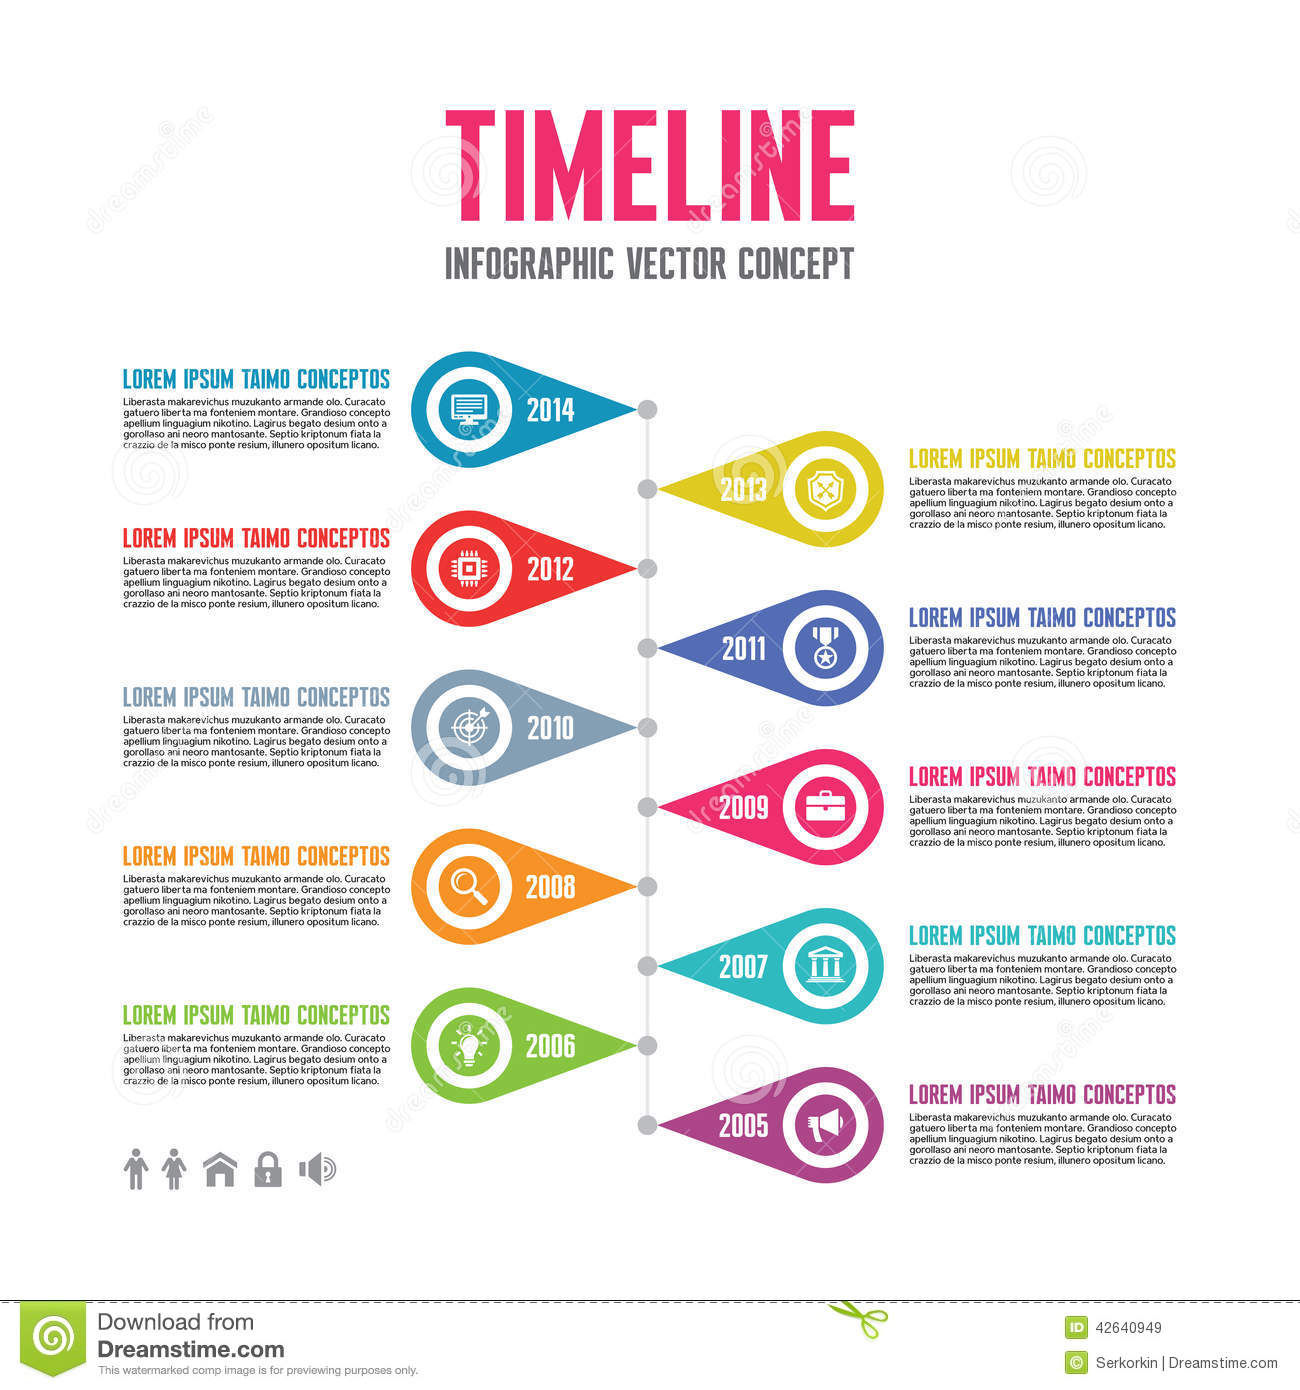 visual style guide template - infographic vector concept in flat design style timeline